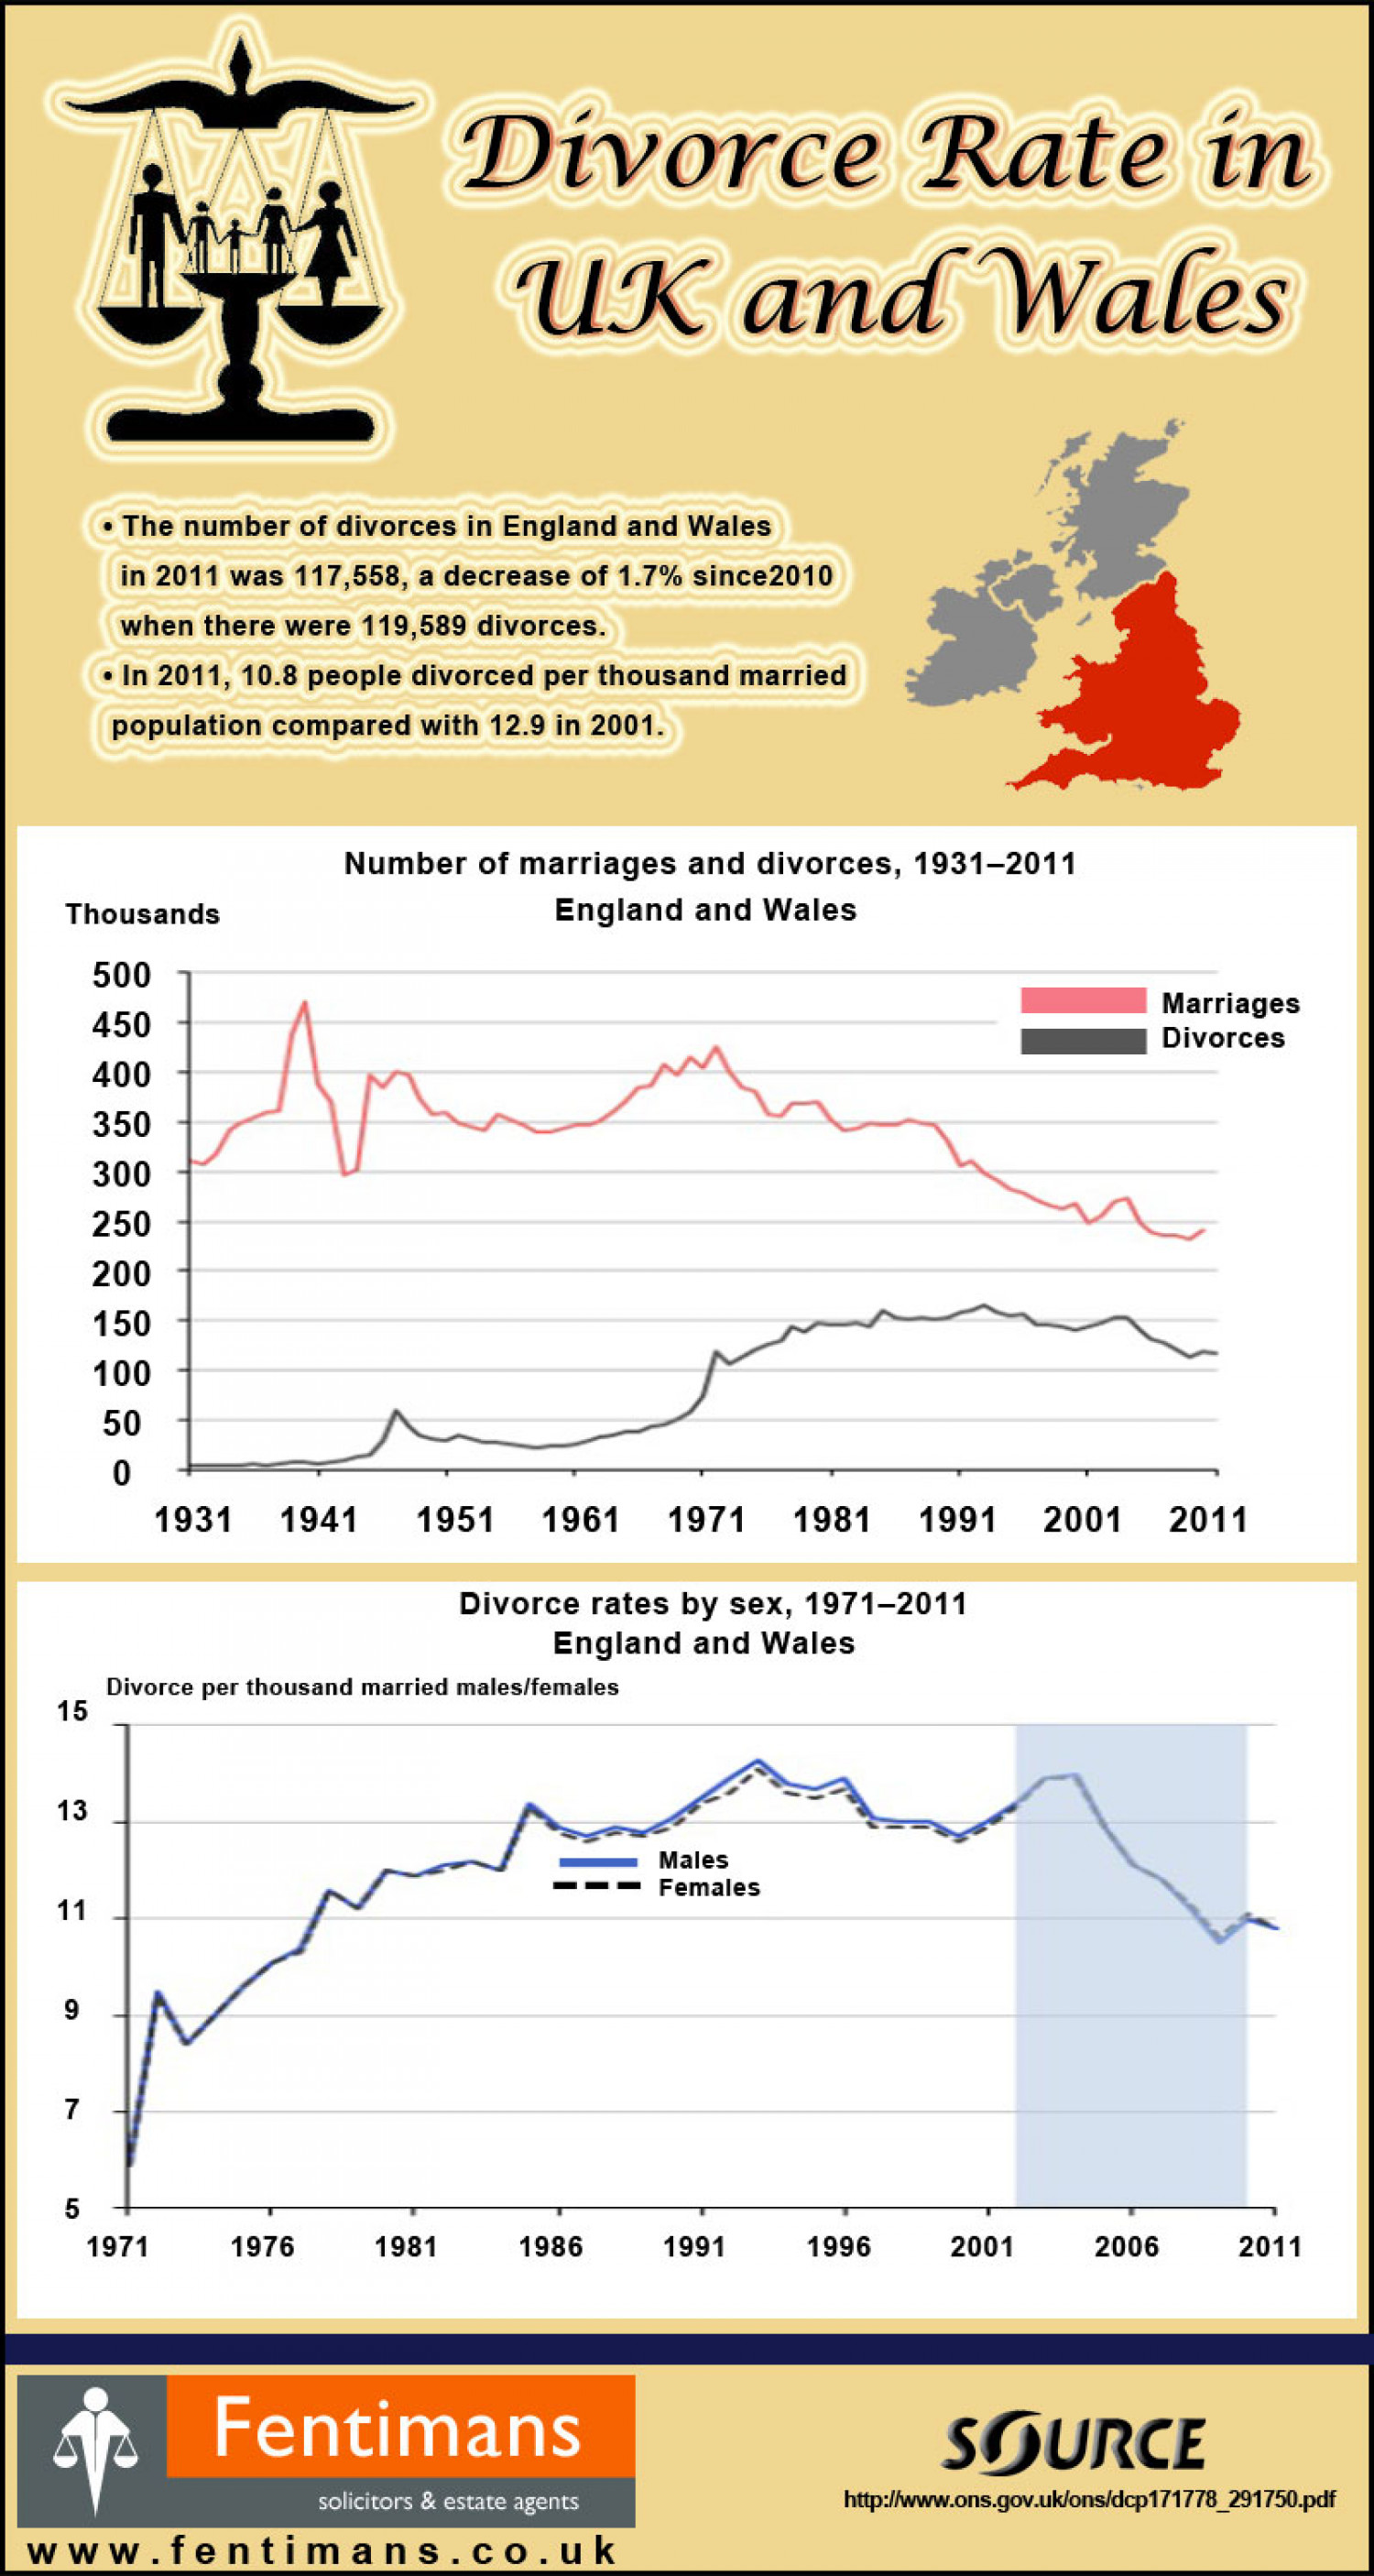 Divorce rate (UK & Wales) Infographic